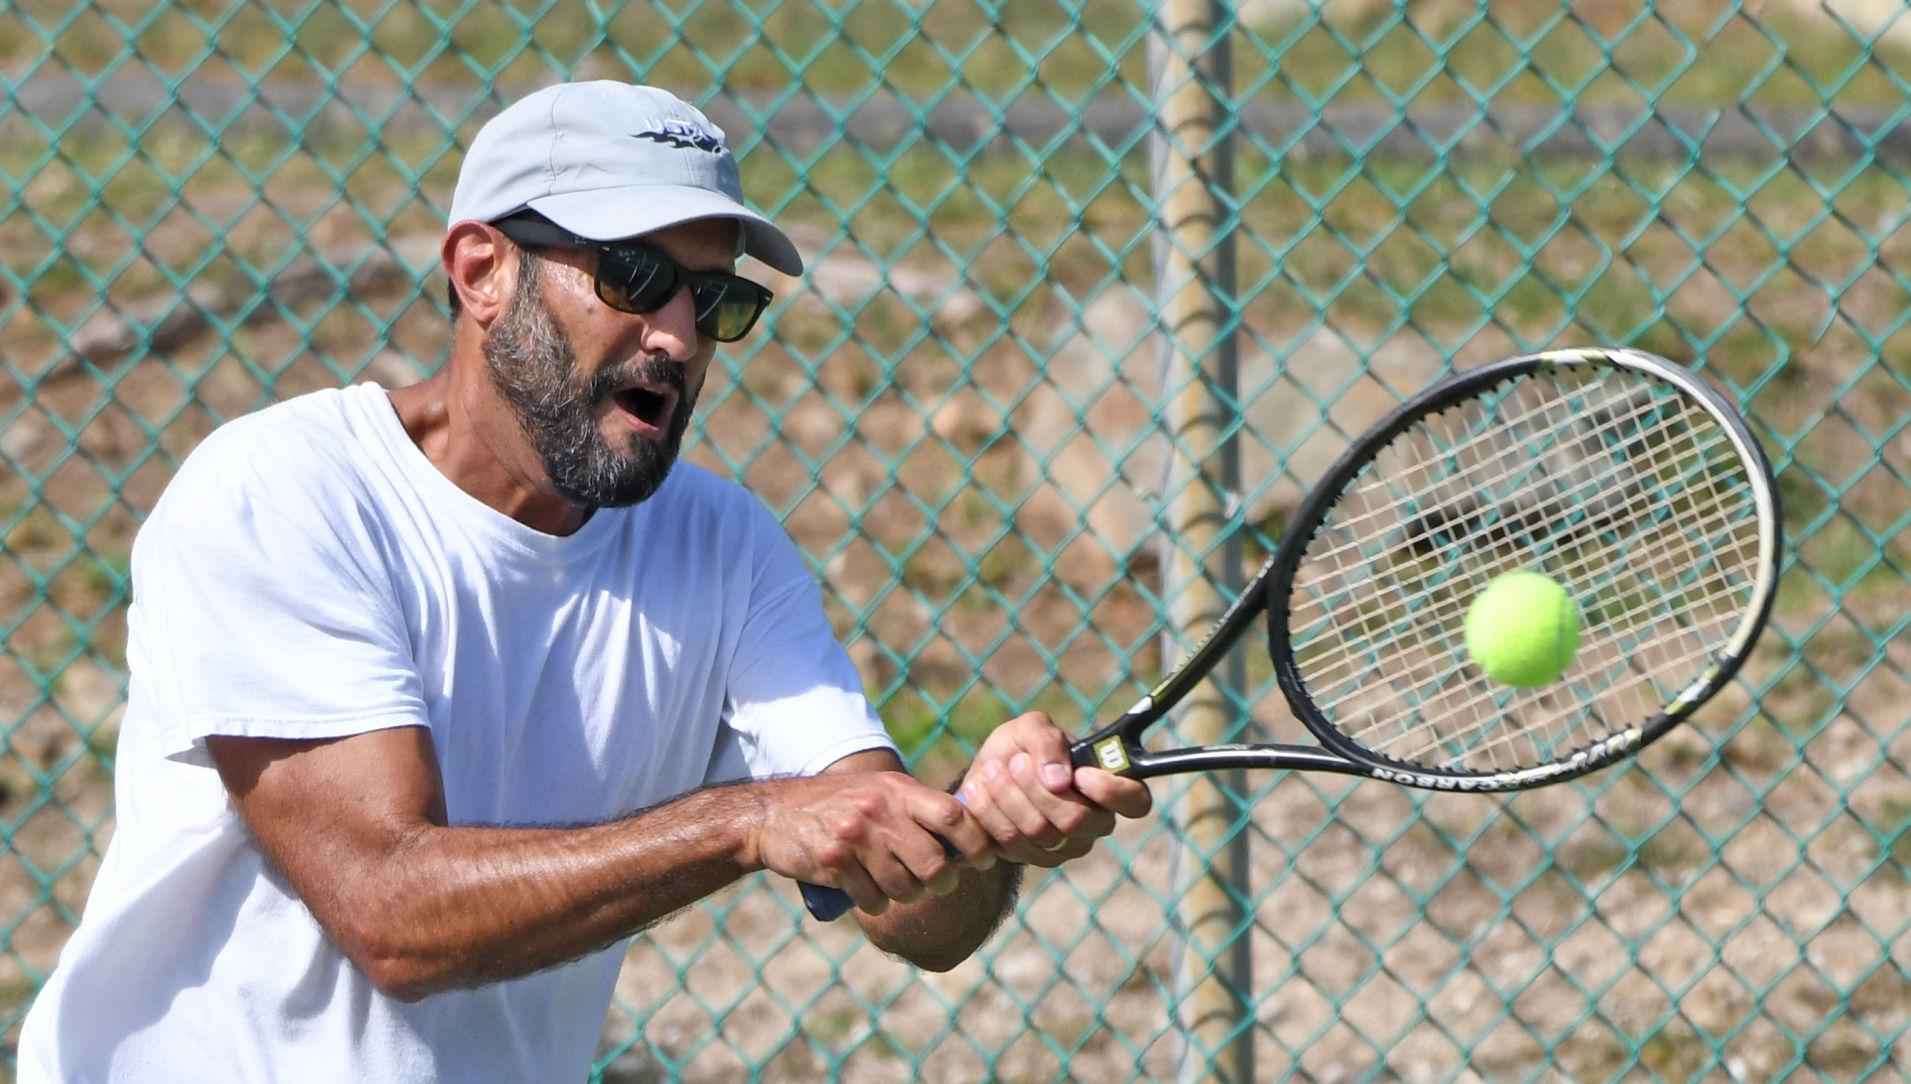 Viya V.I. Open continues this weekend